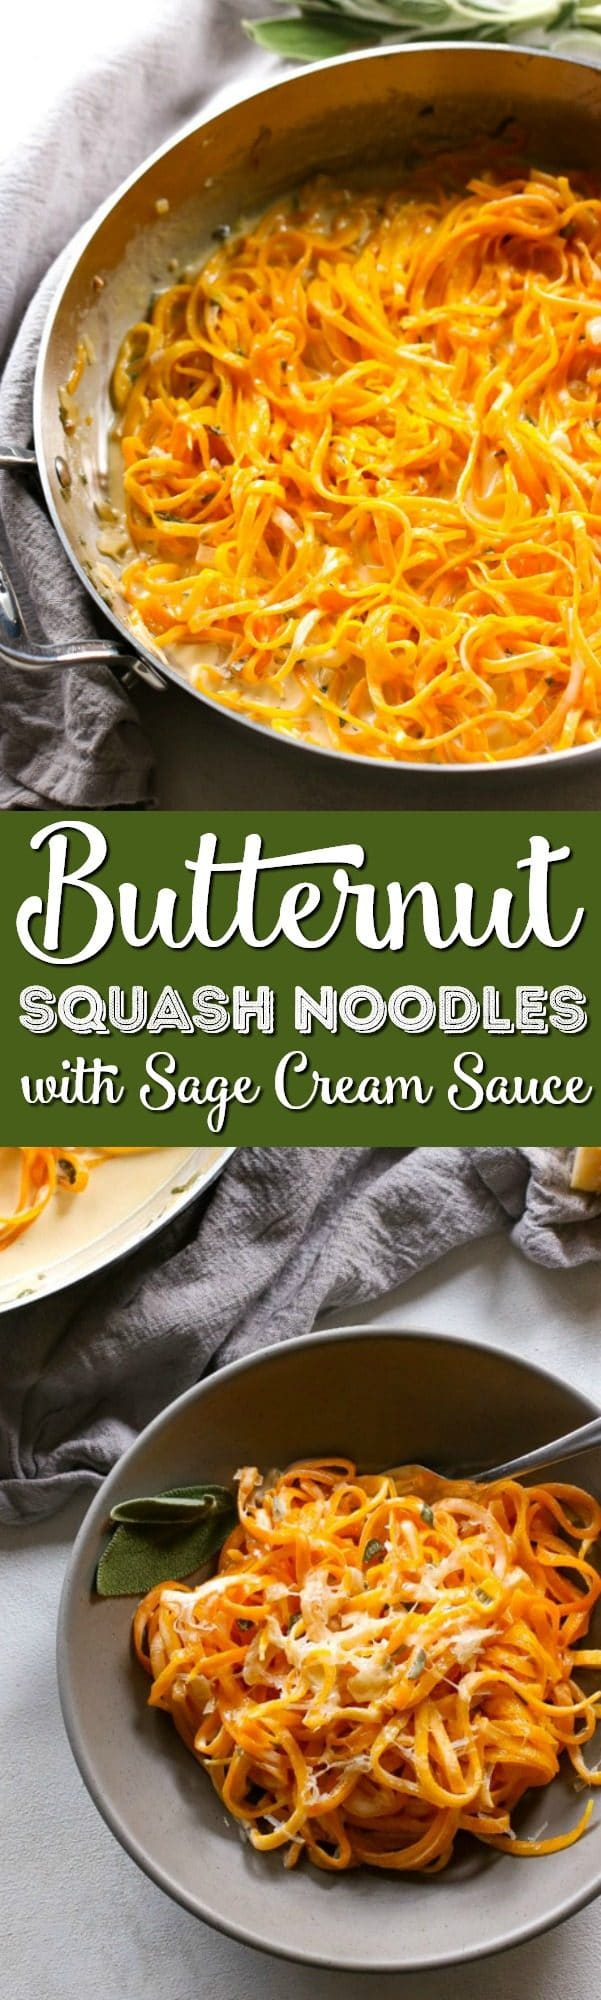 These Butternut Squash Noodles with Sage Cream Sauce are creamy, crunchy, and earthy! It's a super versatile meal - Add a protein of your choice, eat it as a side, or keep it vegetarian.